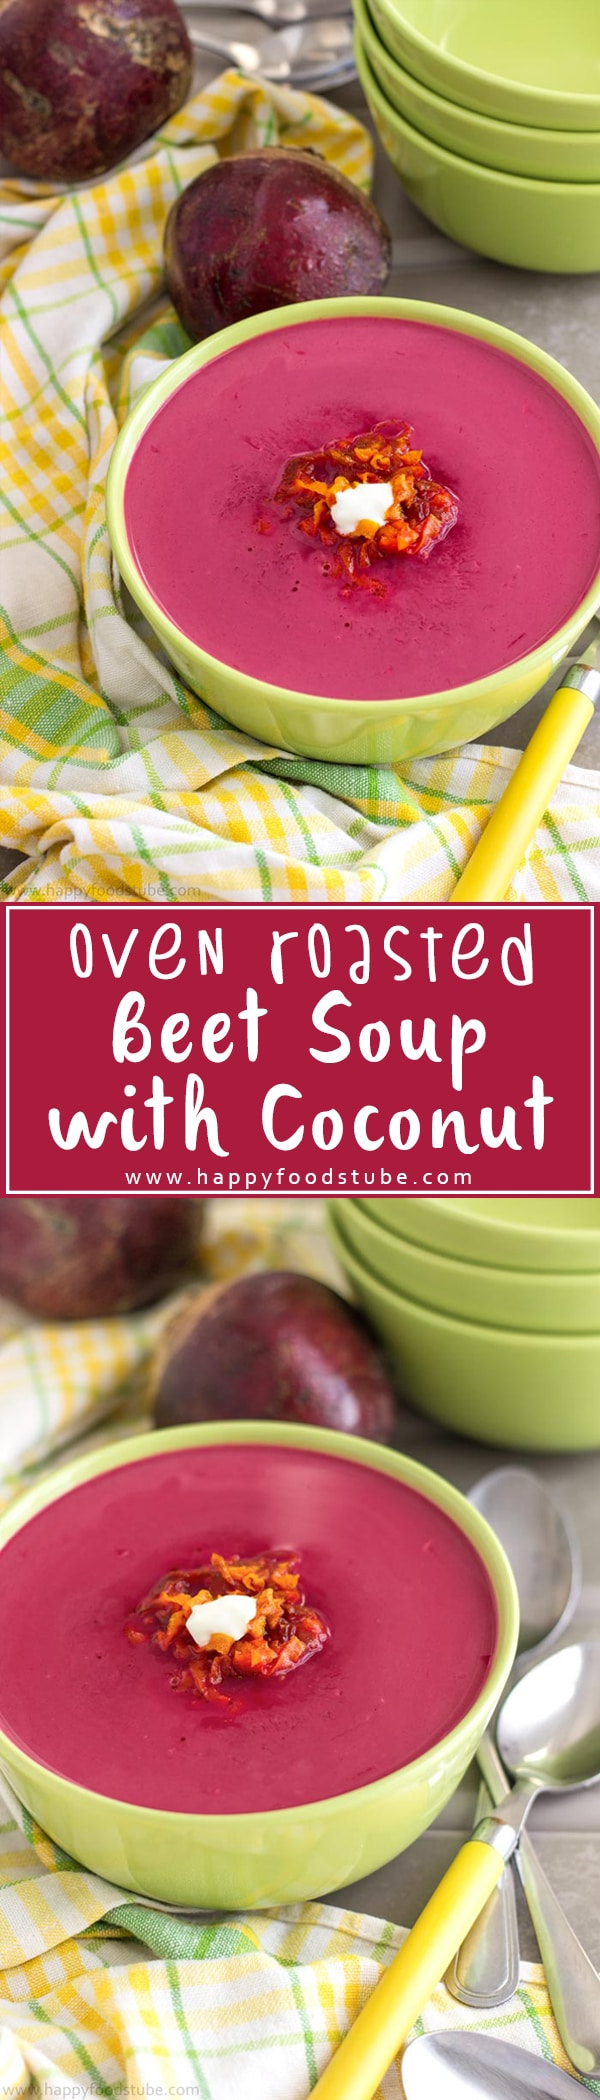 Oven roasted beet soup is a healthy soup with earthy, sweet flavor & a hint of coconut. Another simple vegetarian recipe with lots of flavors. Creamy beet soup